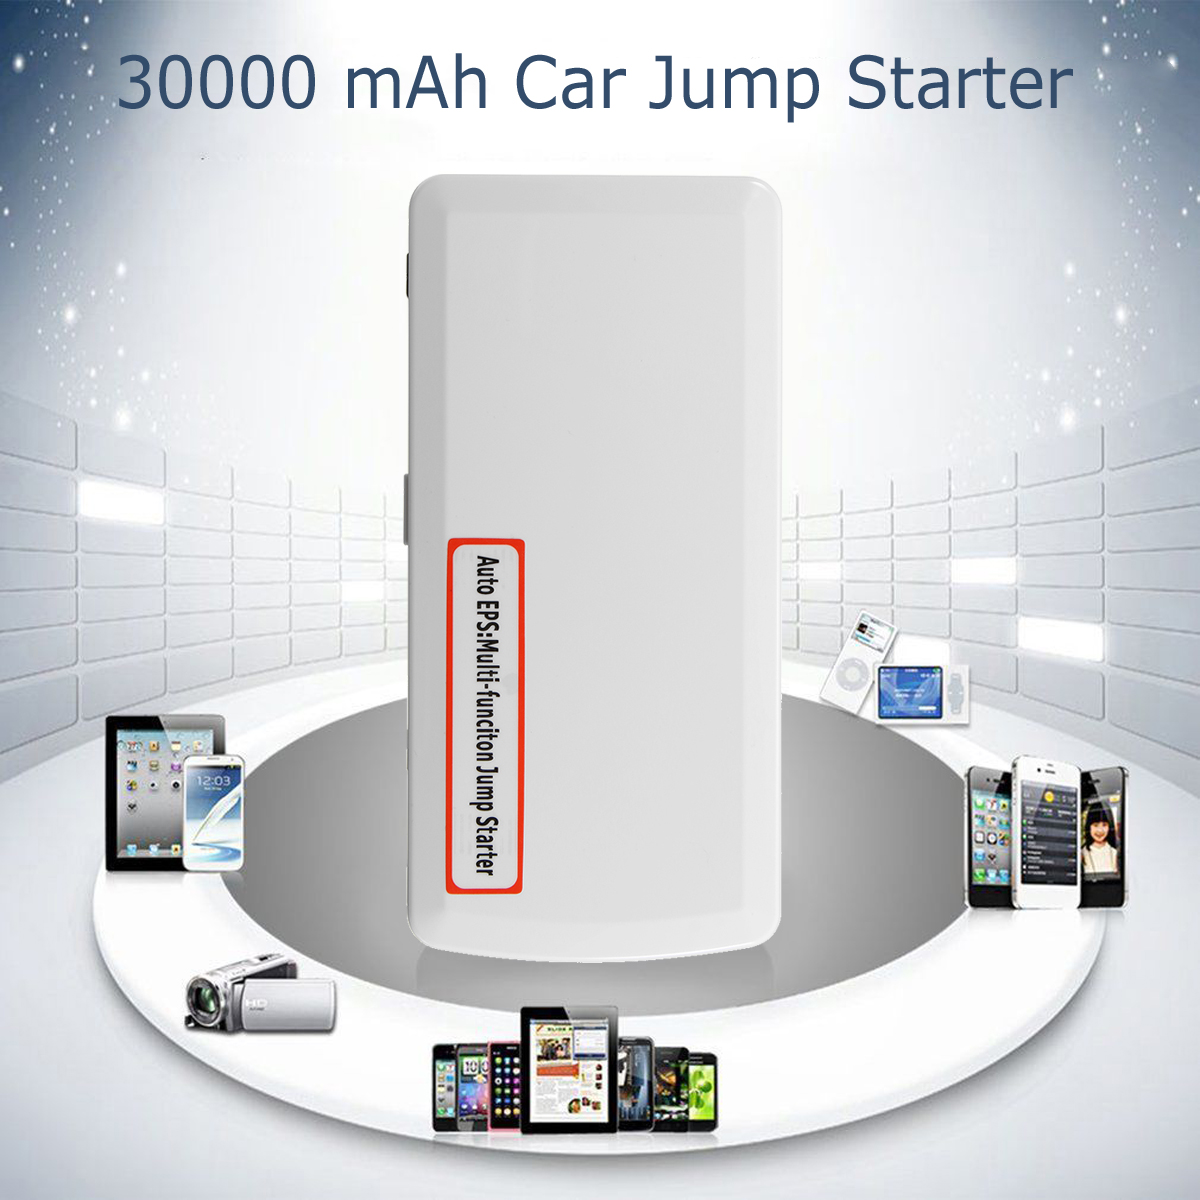 2 USB Portable Car Jump Starter 30000mAh Vehicle Emergency Power Bank Multifunction Car Battery Booster Charger Starting Devices